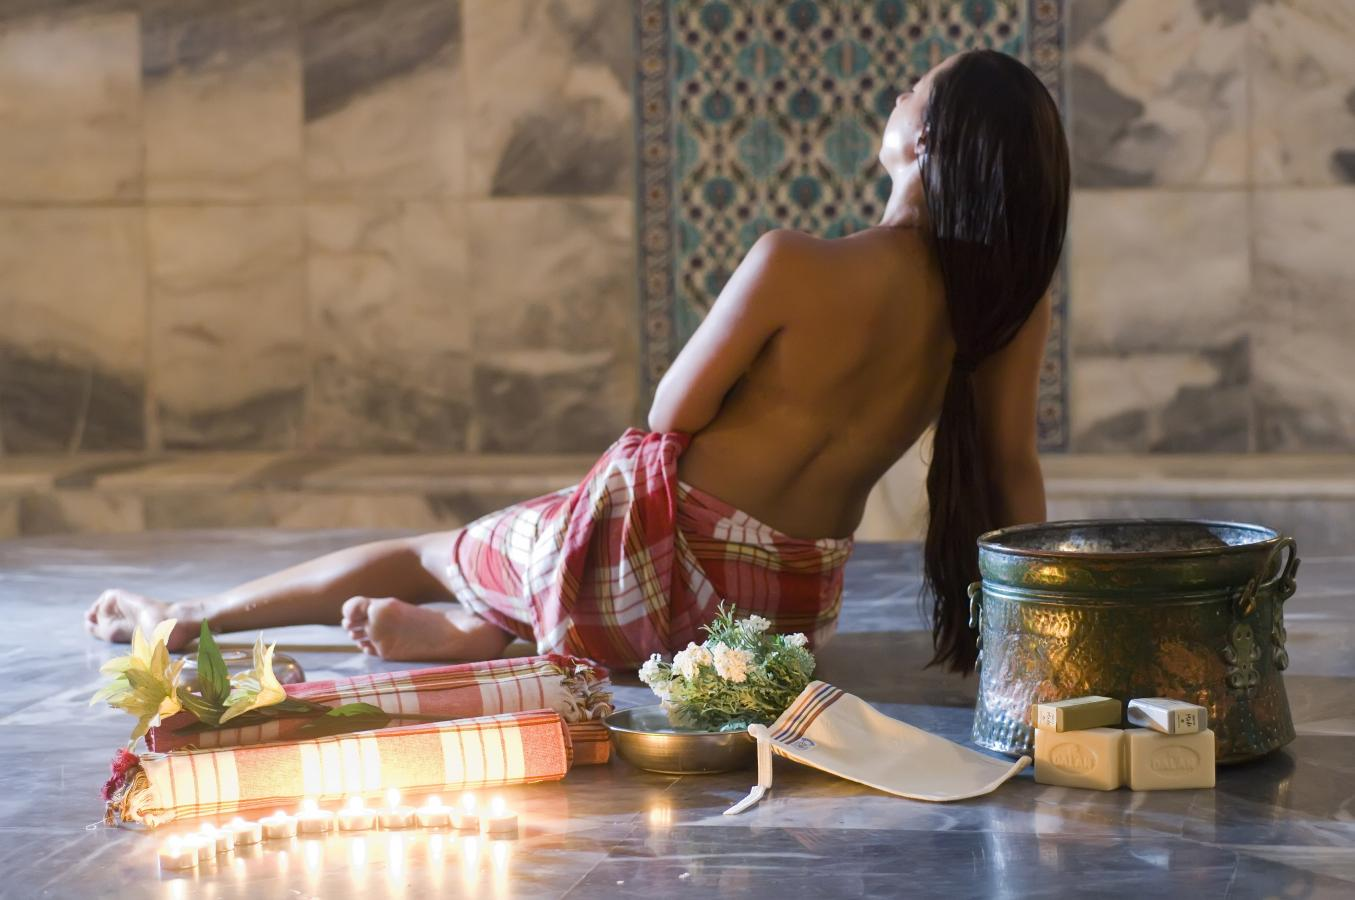 Belek Turkish Bath Full Body Relaxation Massage At The